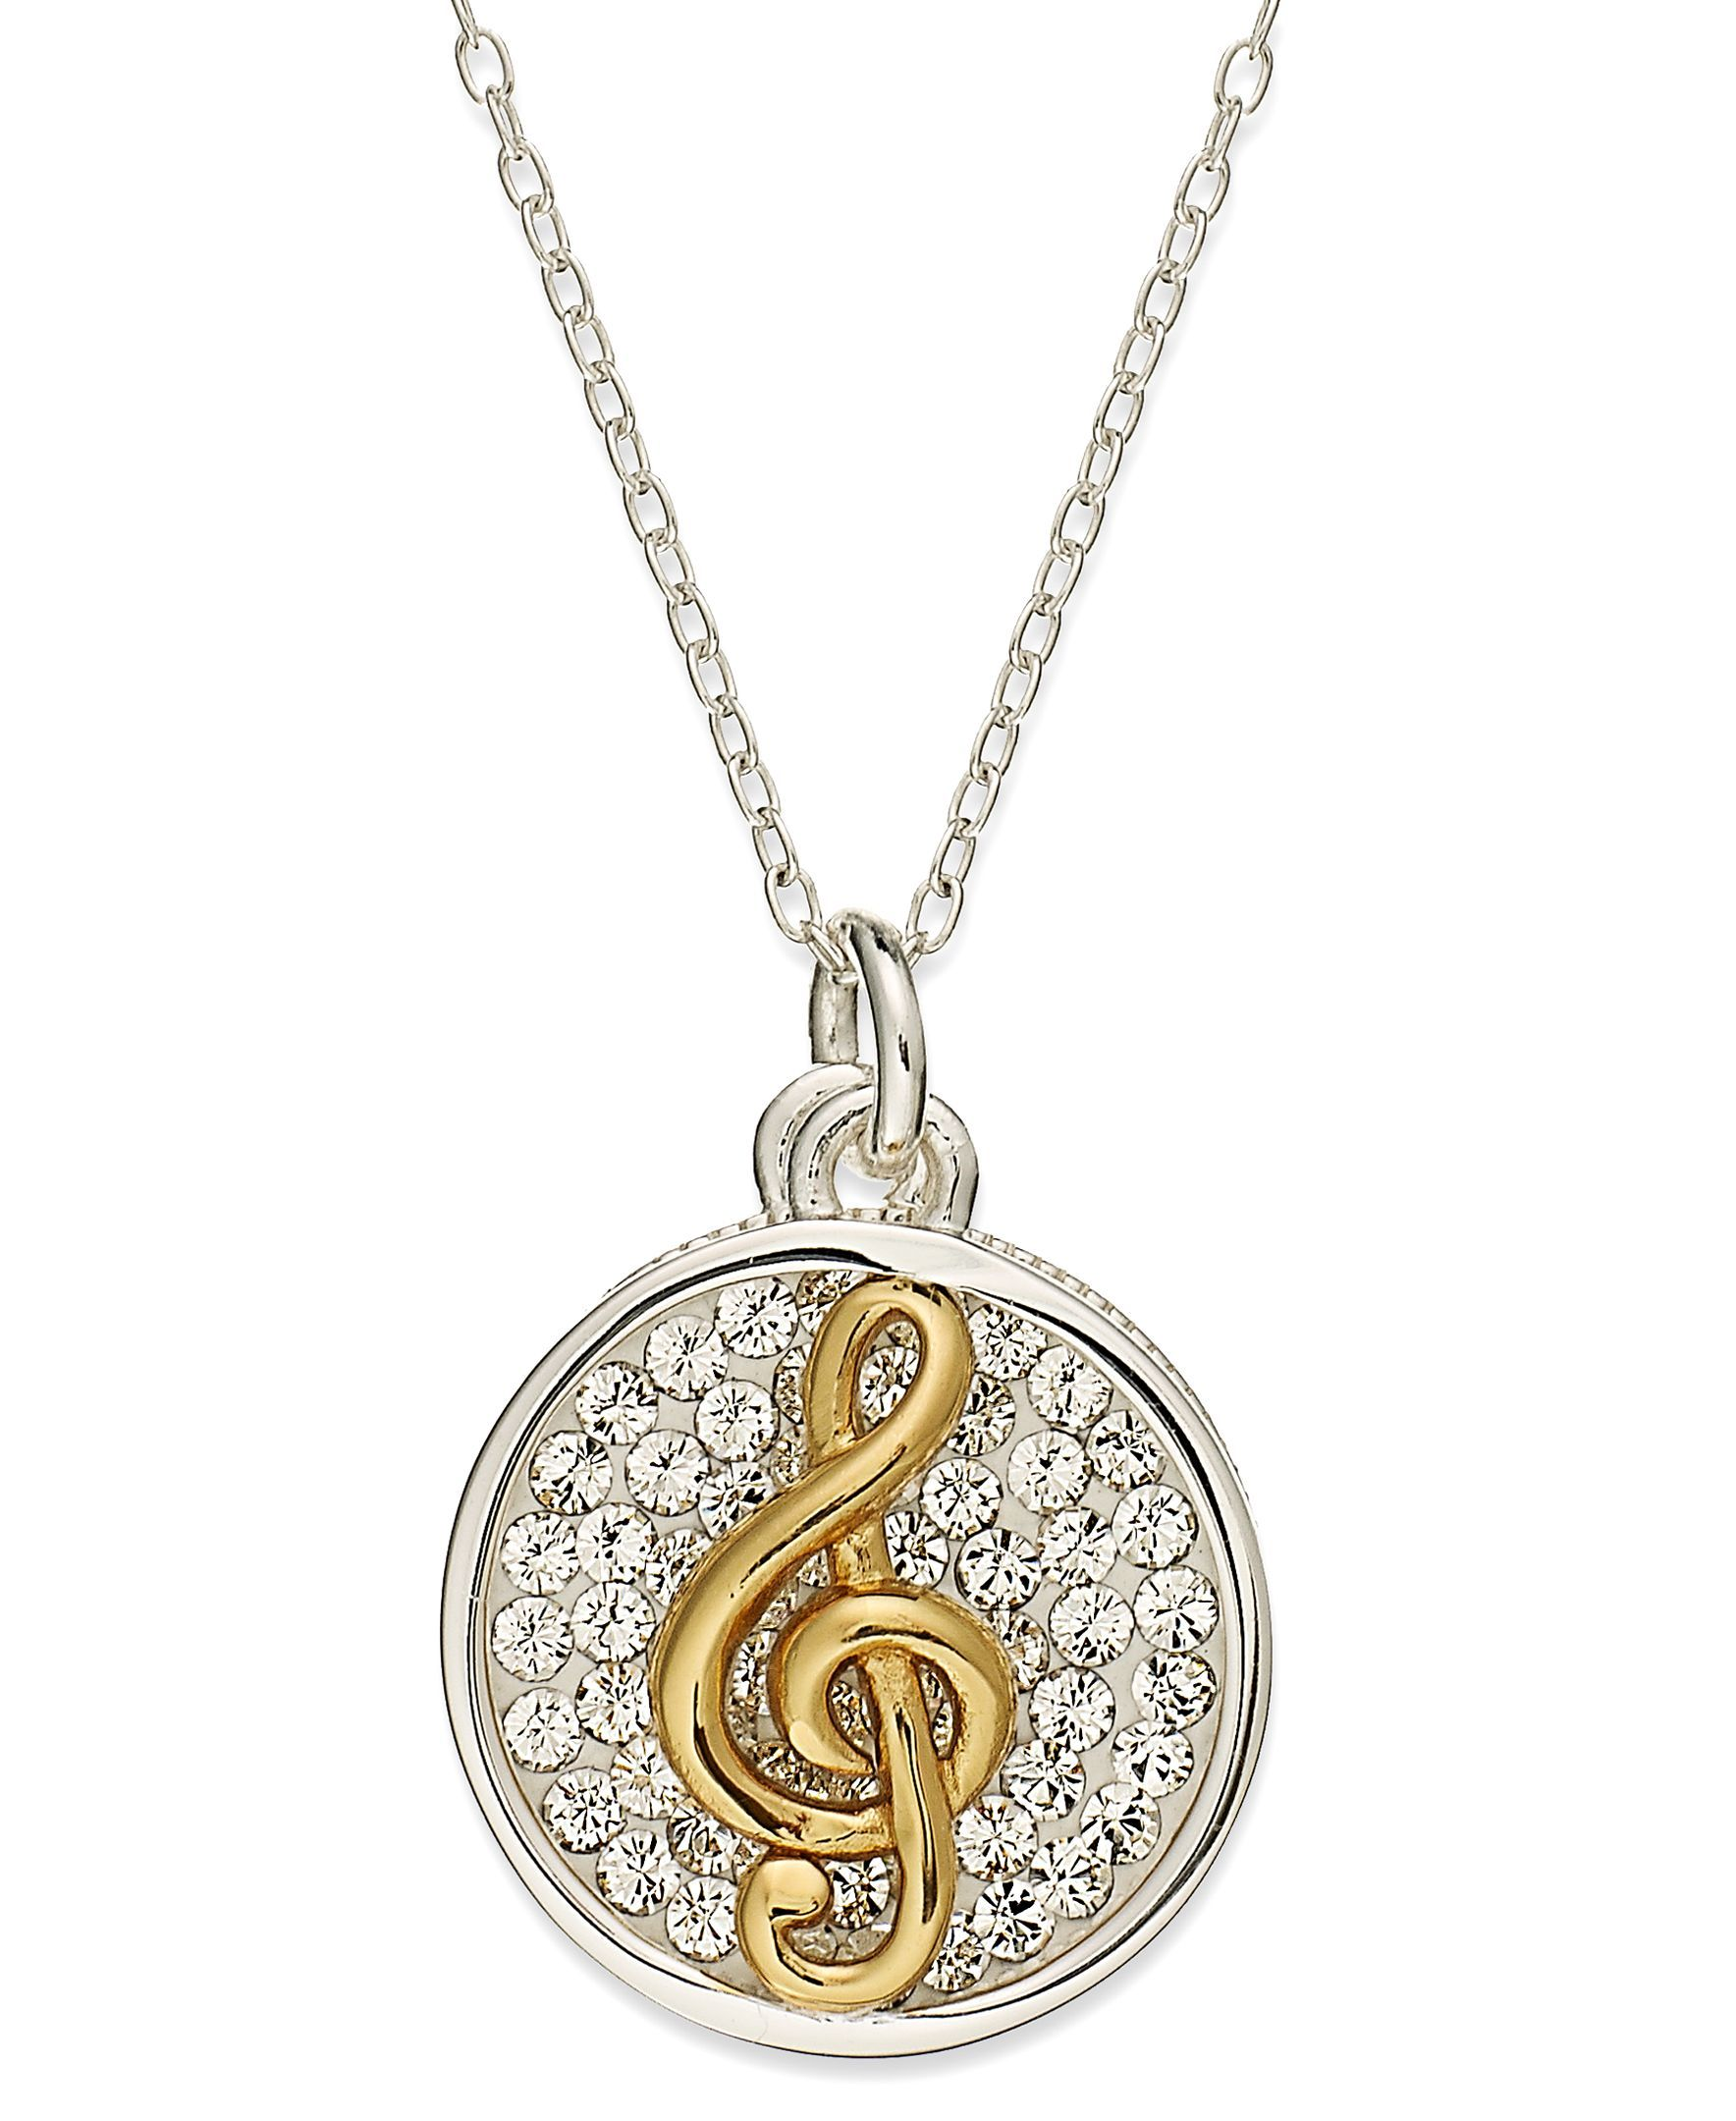 Inspirational 14k gold over sterling silver and sterling silver inspirational 14k gold over sterling silver and sterling silver necklace crystal treble clef inspirational pendant aloadofball Choice Image